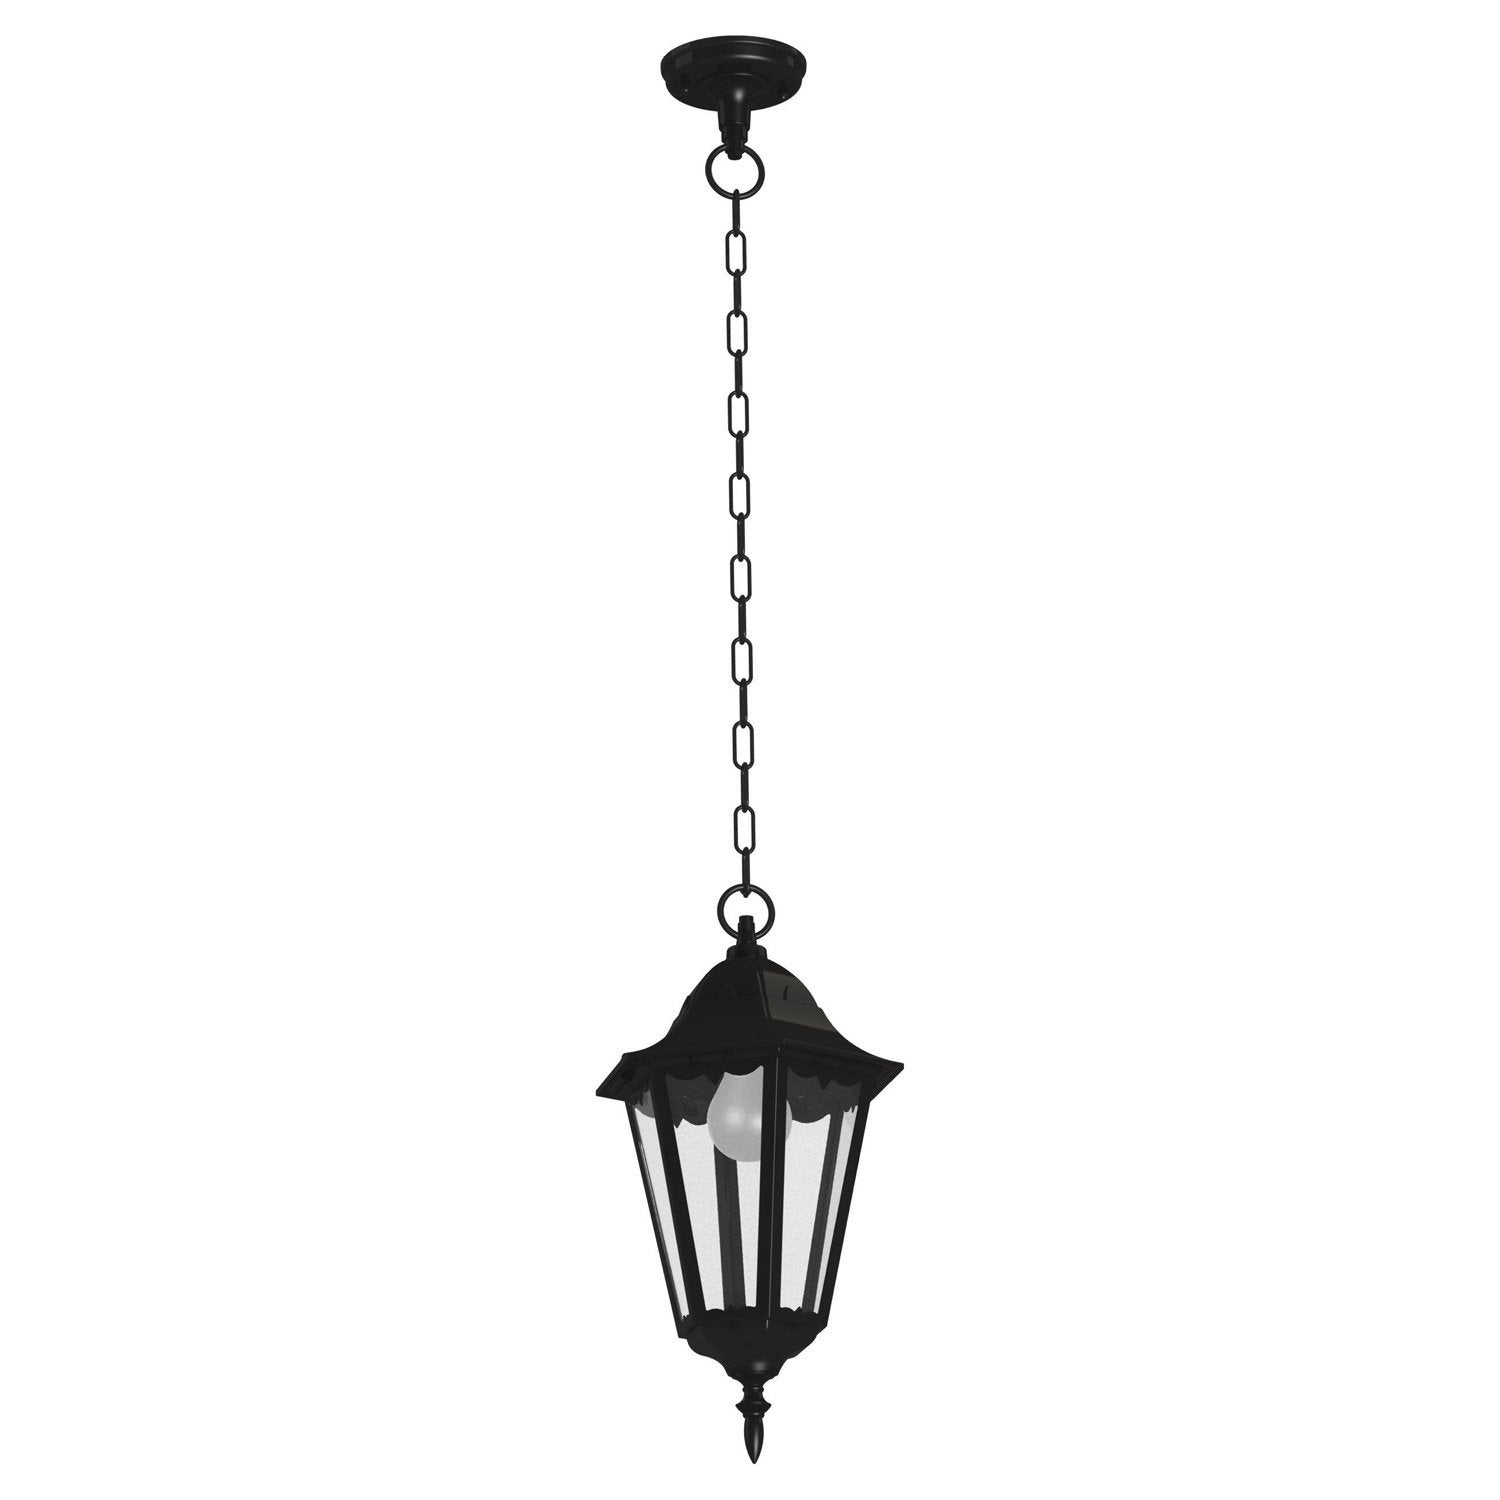 Suspension ext rieure navedo e27 noir argent eglo leroy for Suspension exterieure